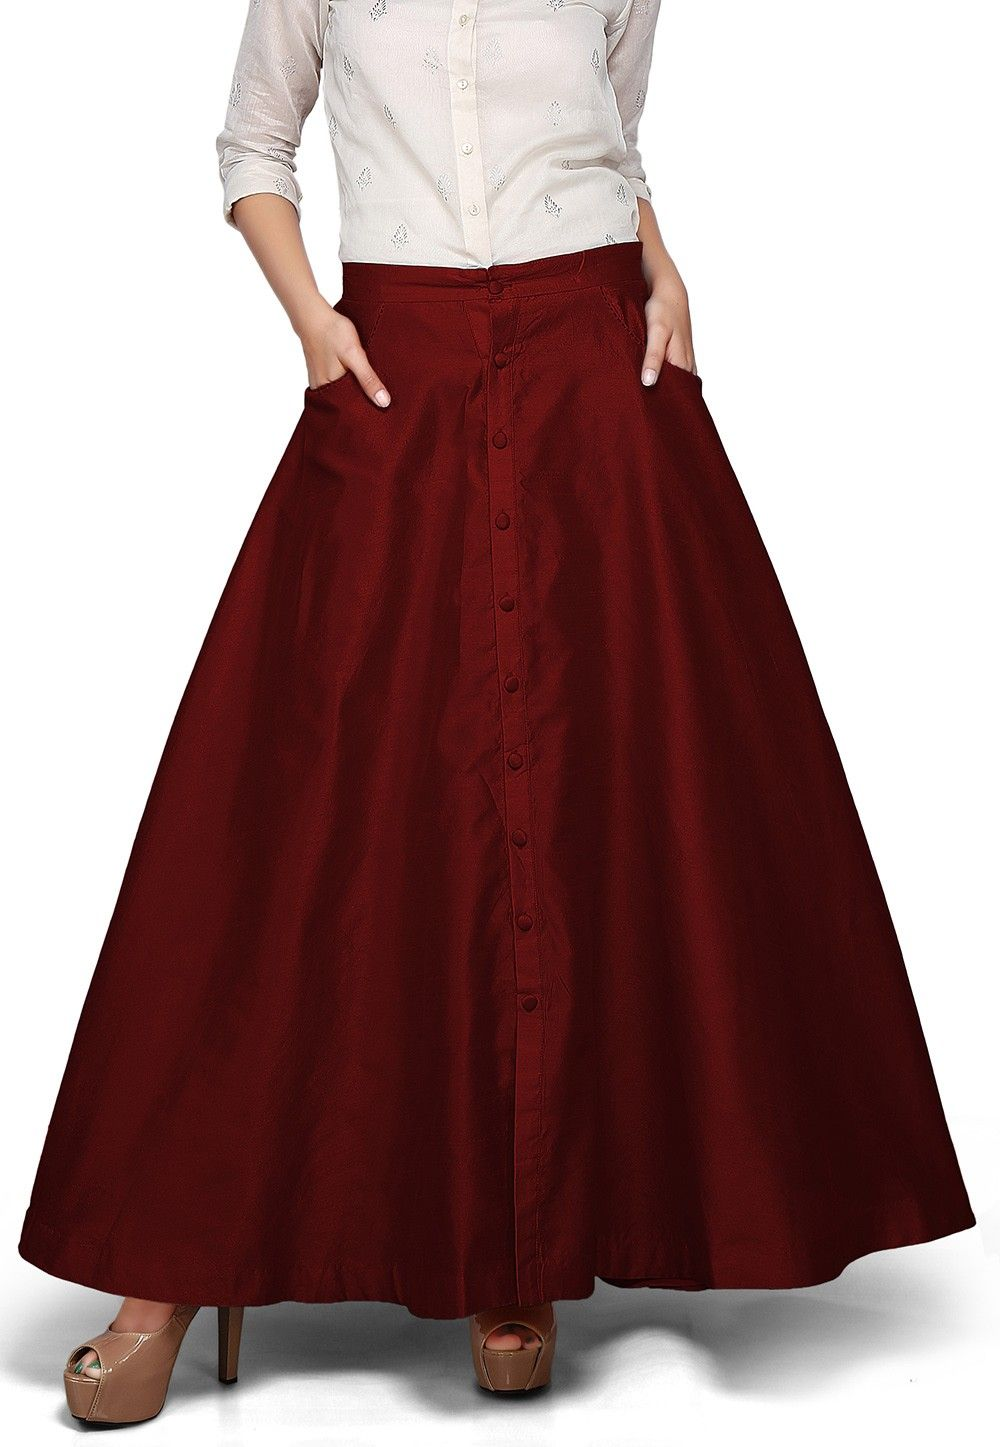 Plain Dupion Silk Long Skirt in Maroon